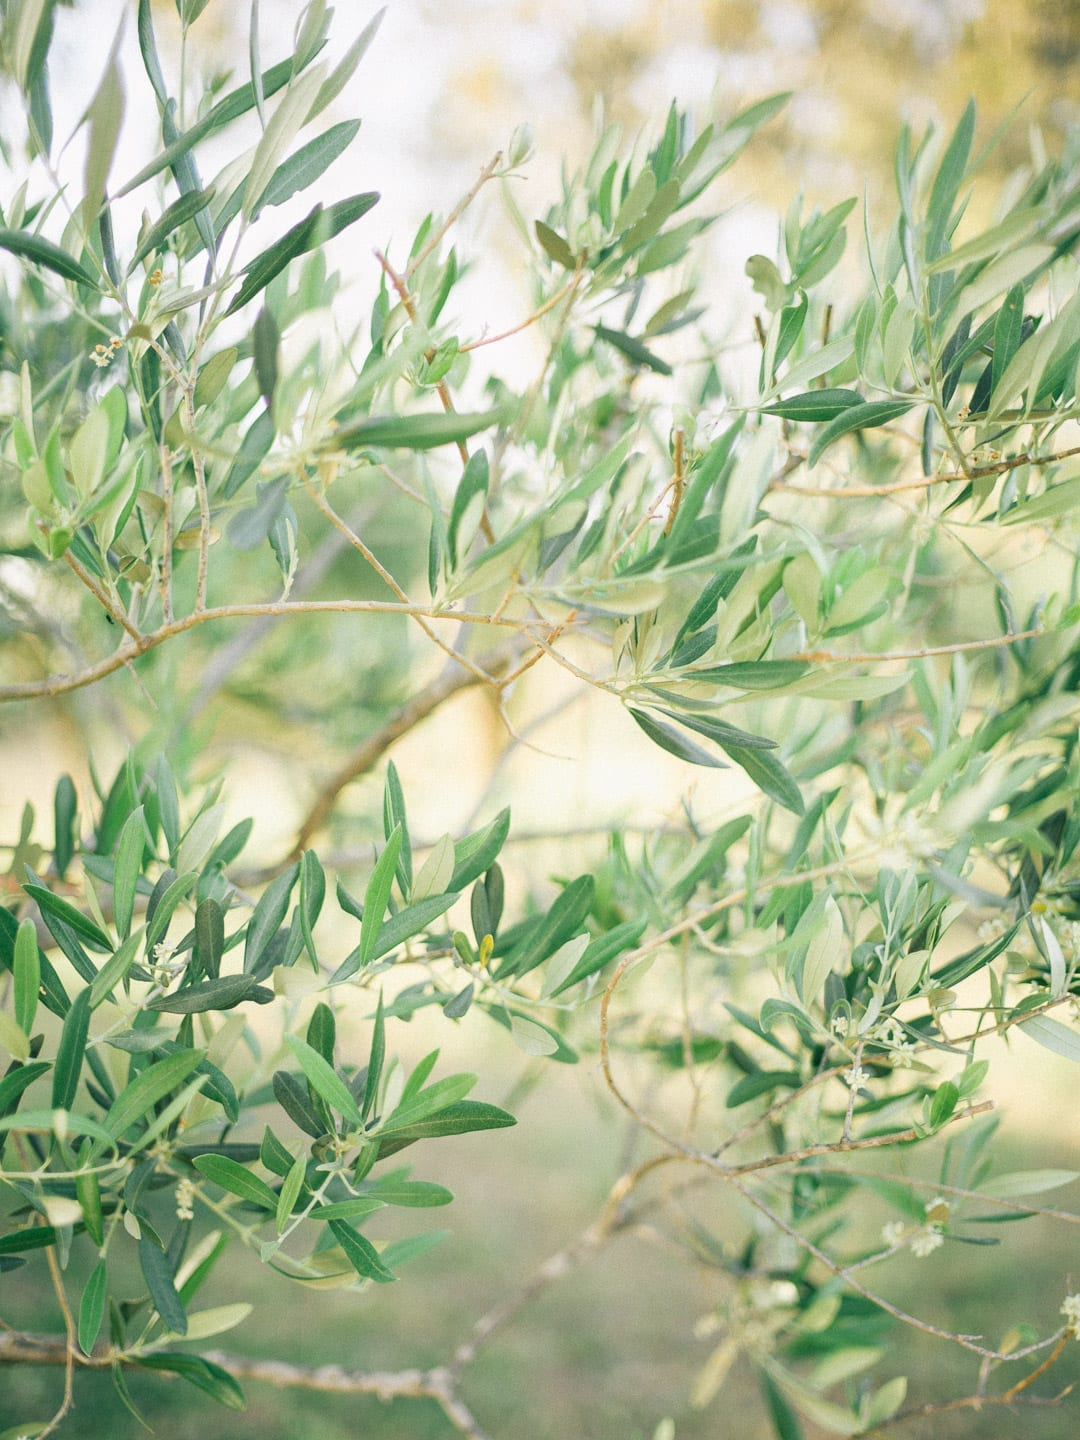 Olive branches in a garden - First Glimpse of France